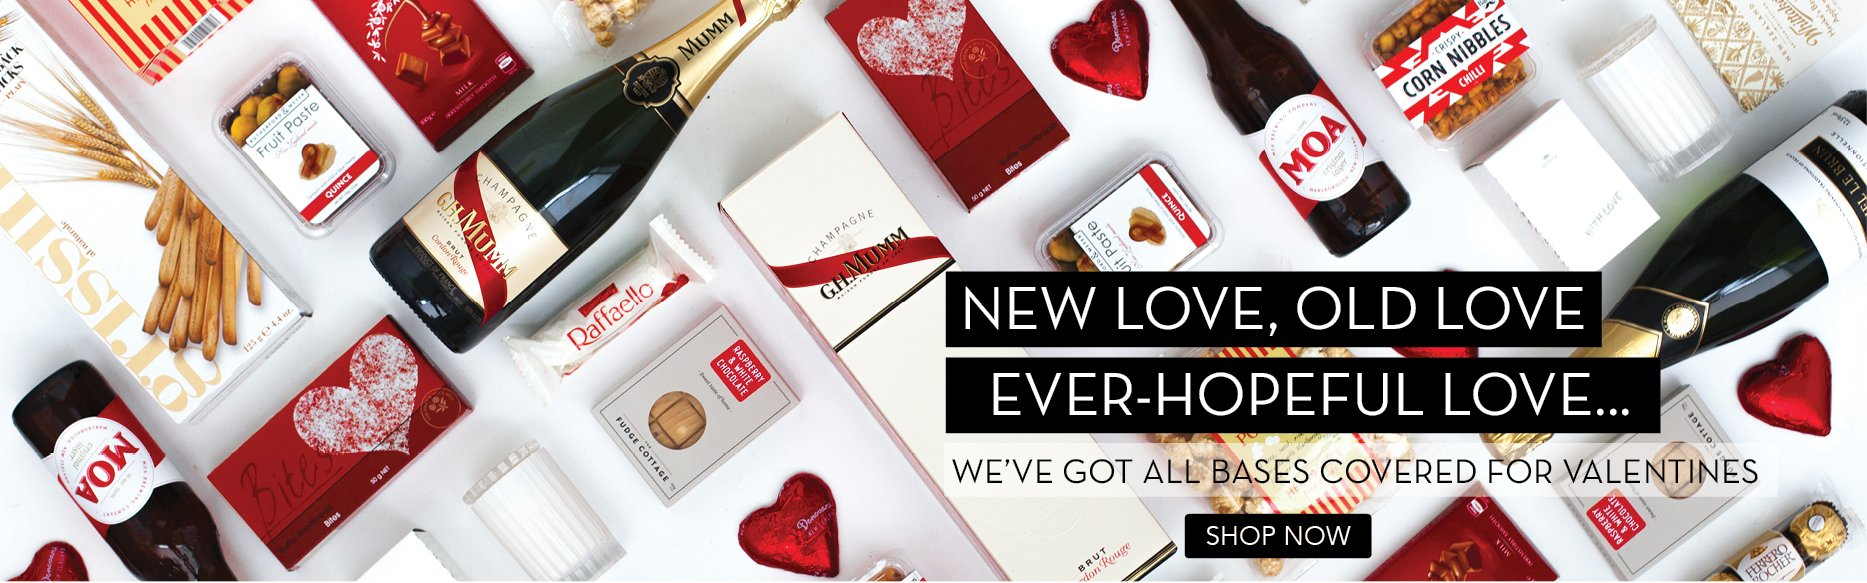 Giftbox Boutique Valentines Day